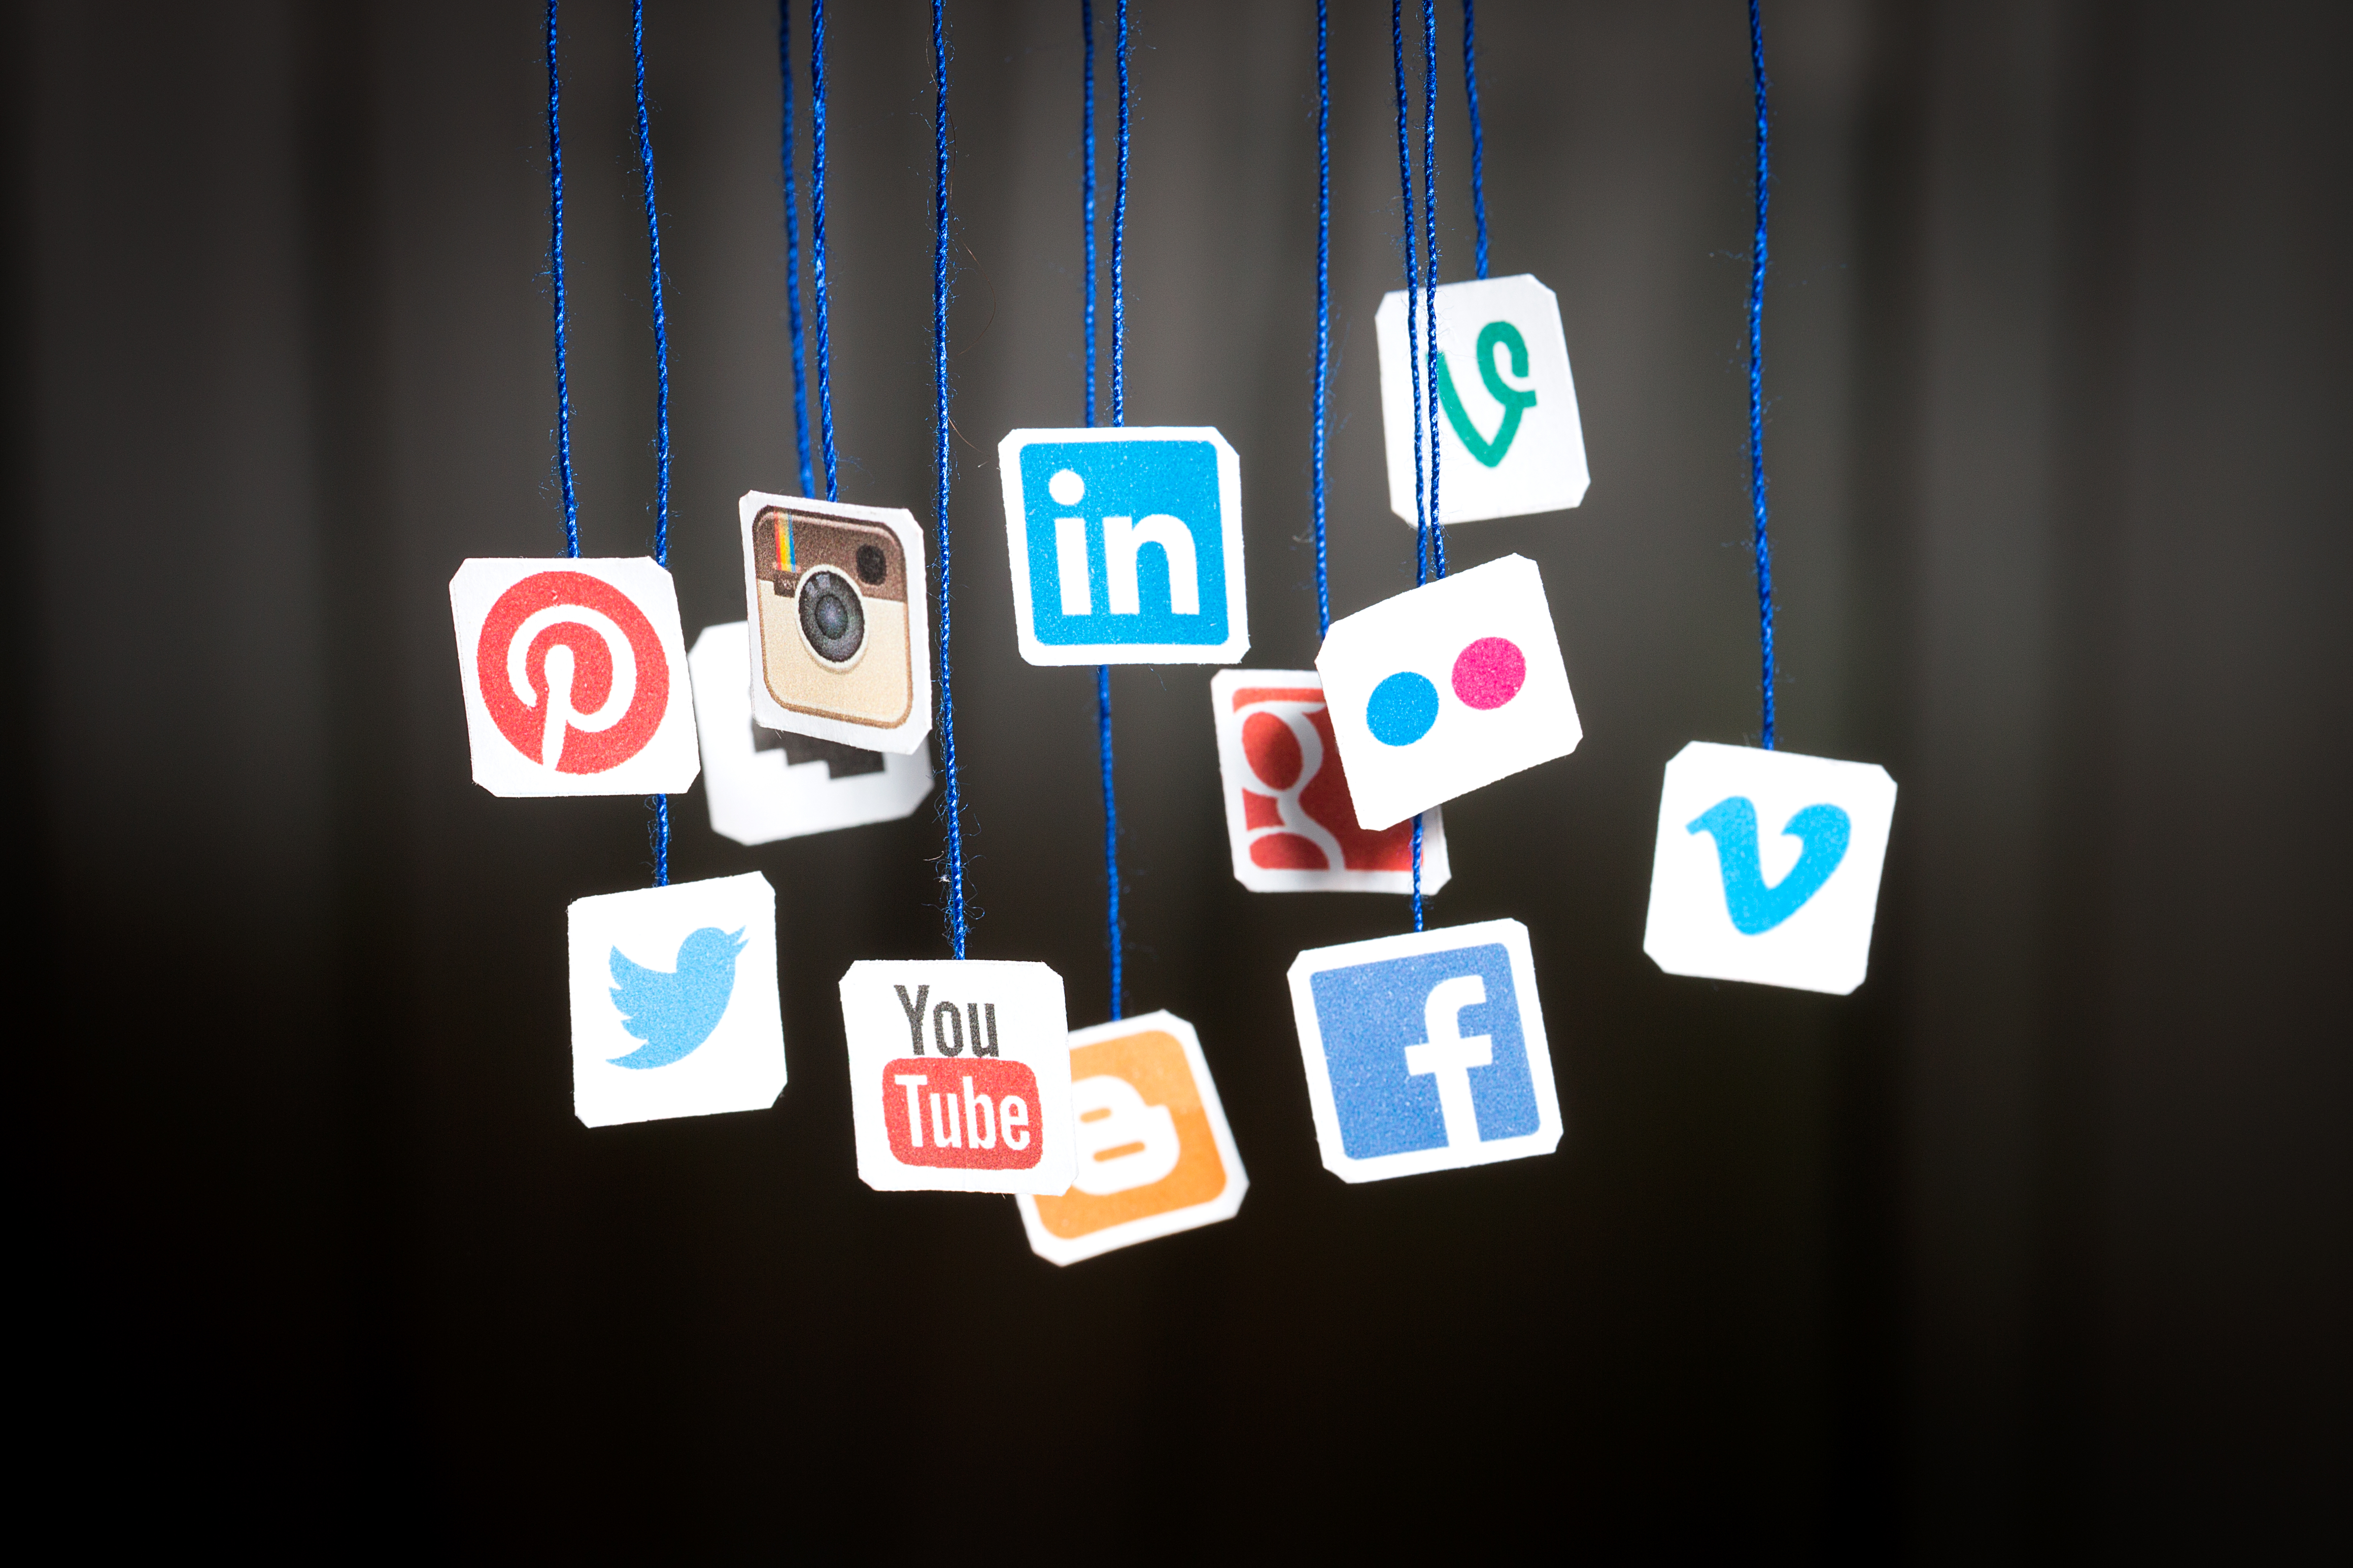 Popular social media website logos printed on paper and hanging 528343033 4637x3091